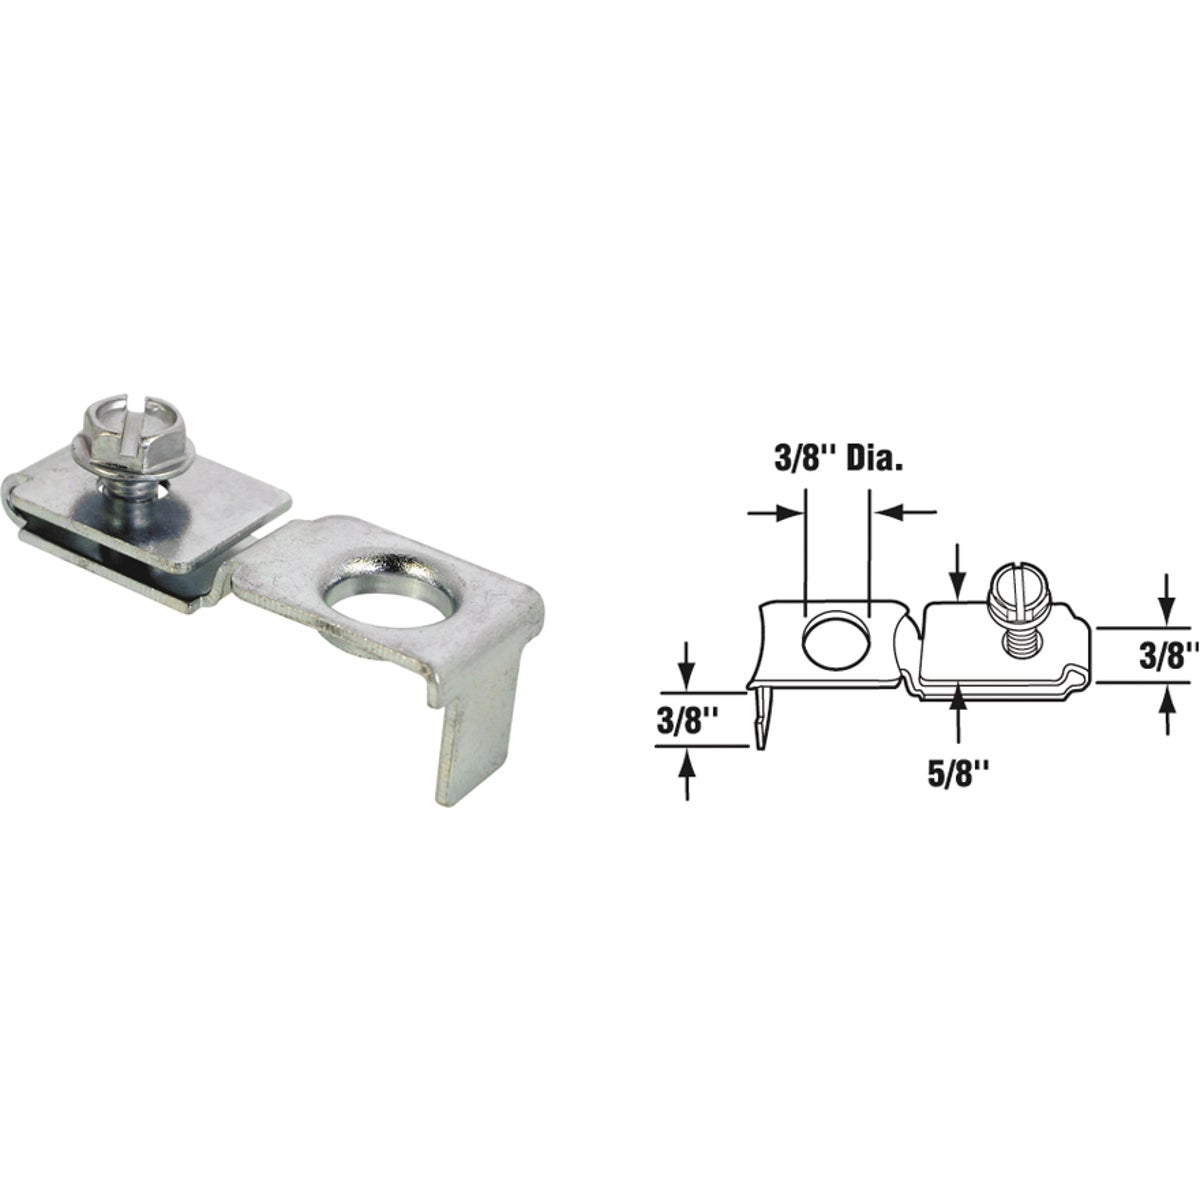 BI-FOLD DR PIVOT BRACKET - 16851 by Prime Line Products